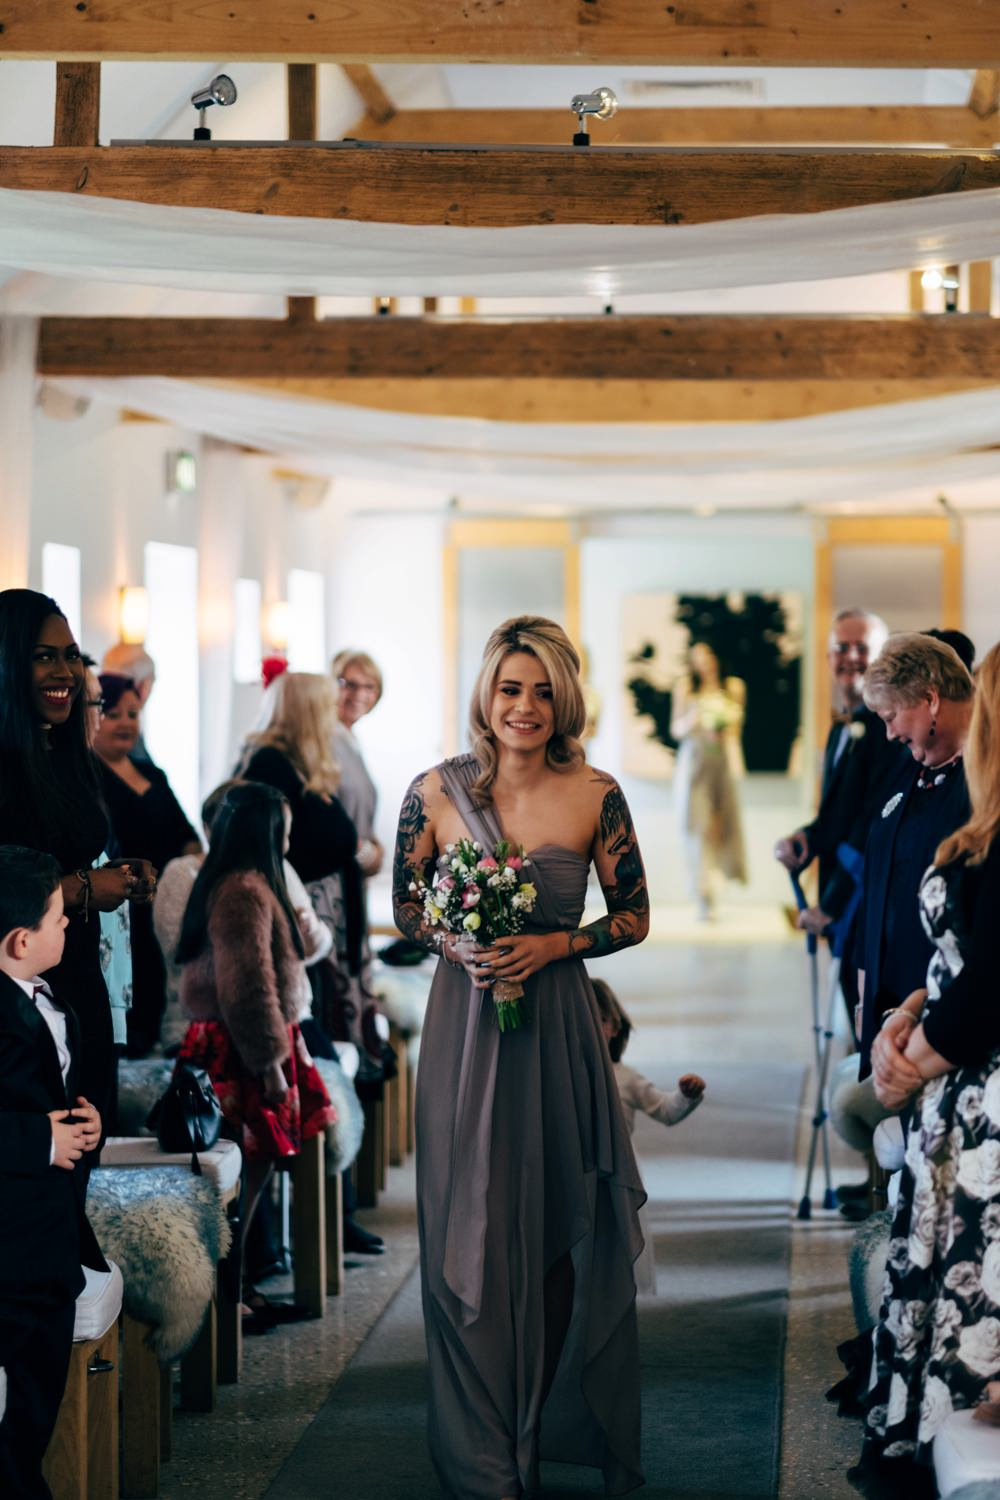 Spring Wedding at Southend Barns in Chichester by Dale Weeks Photography